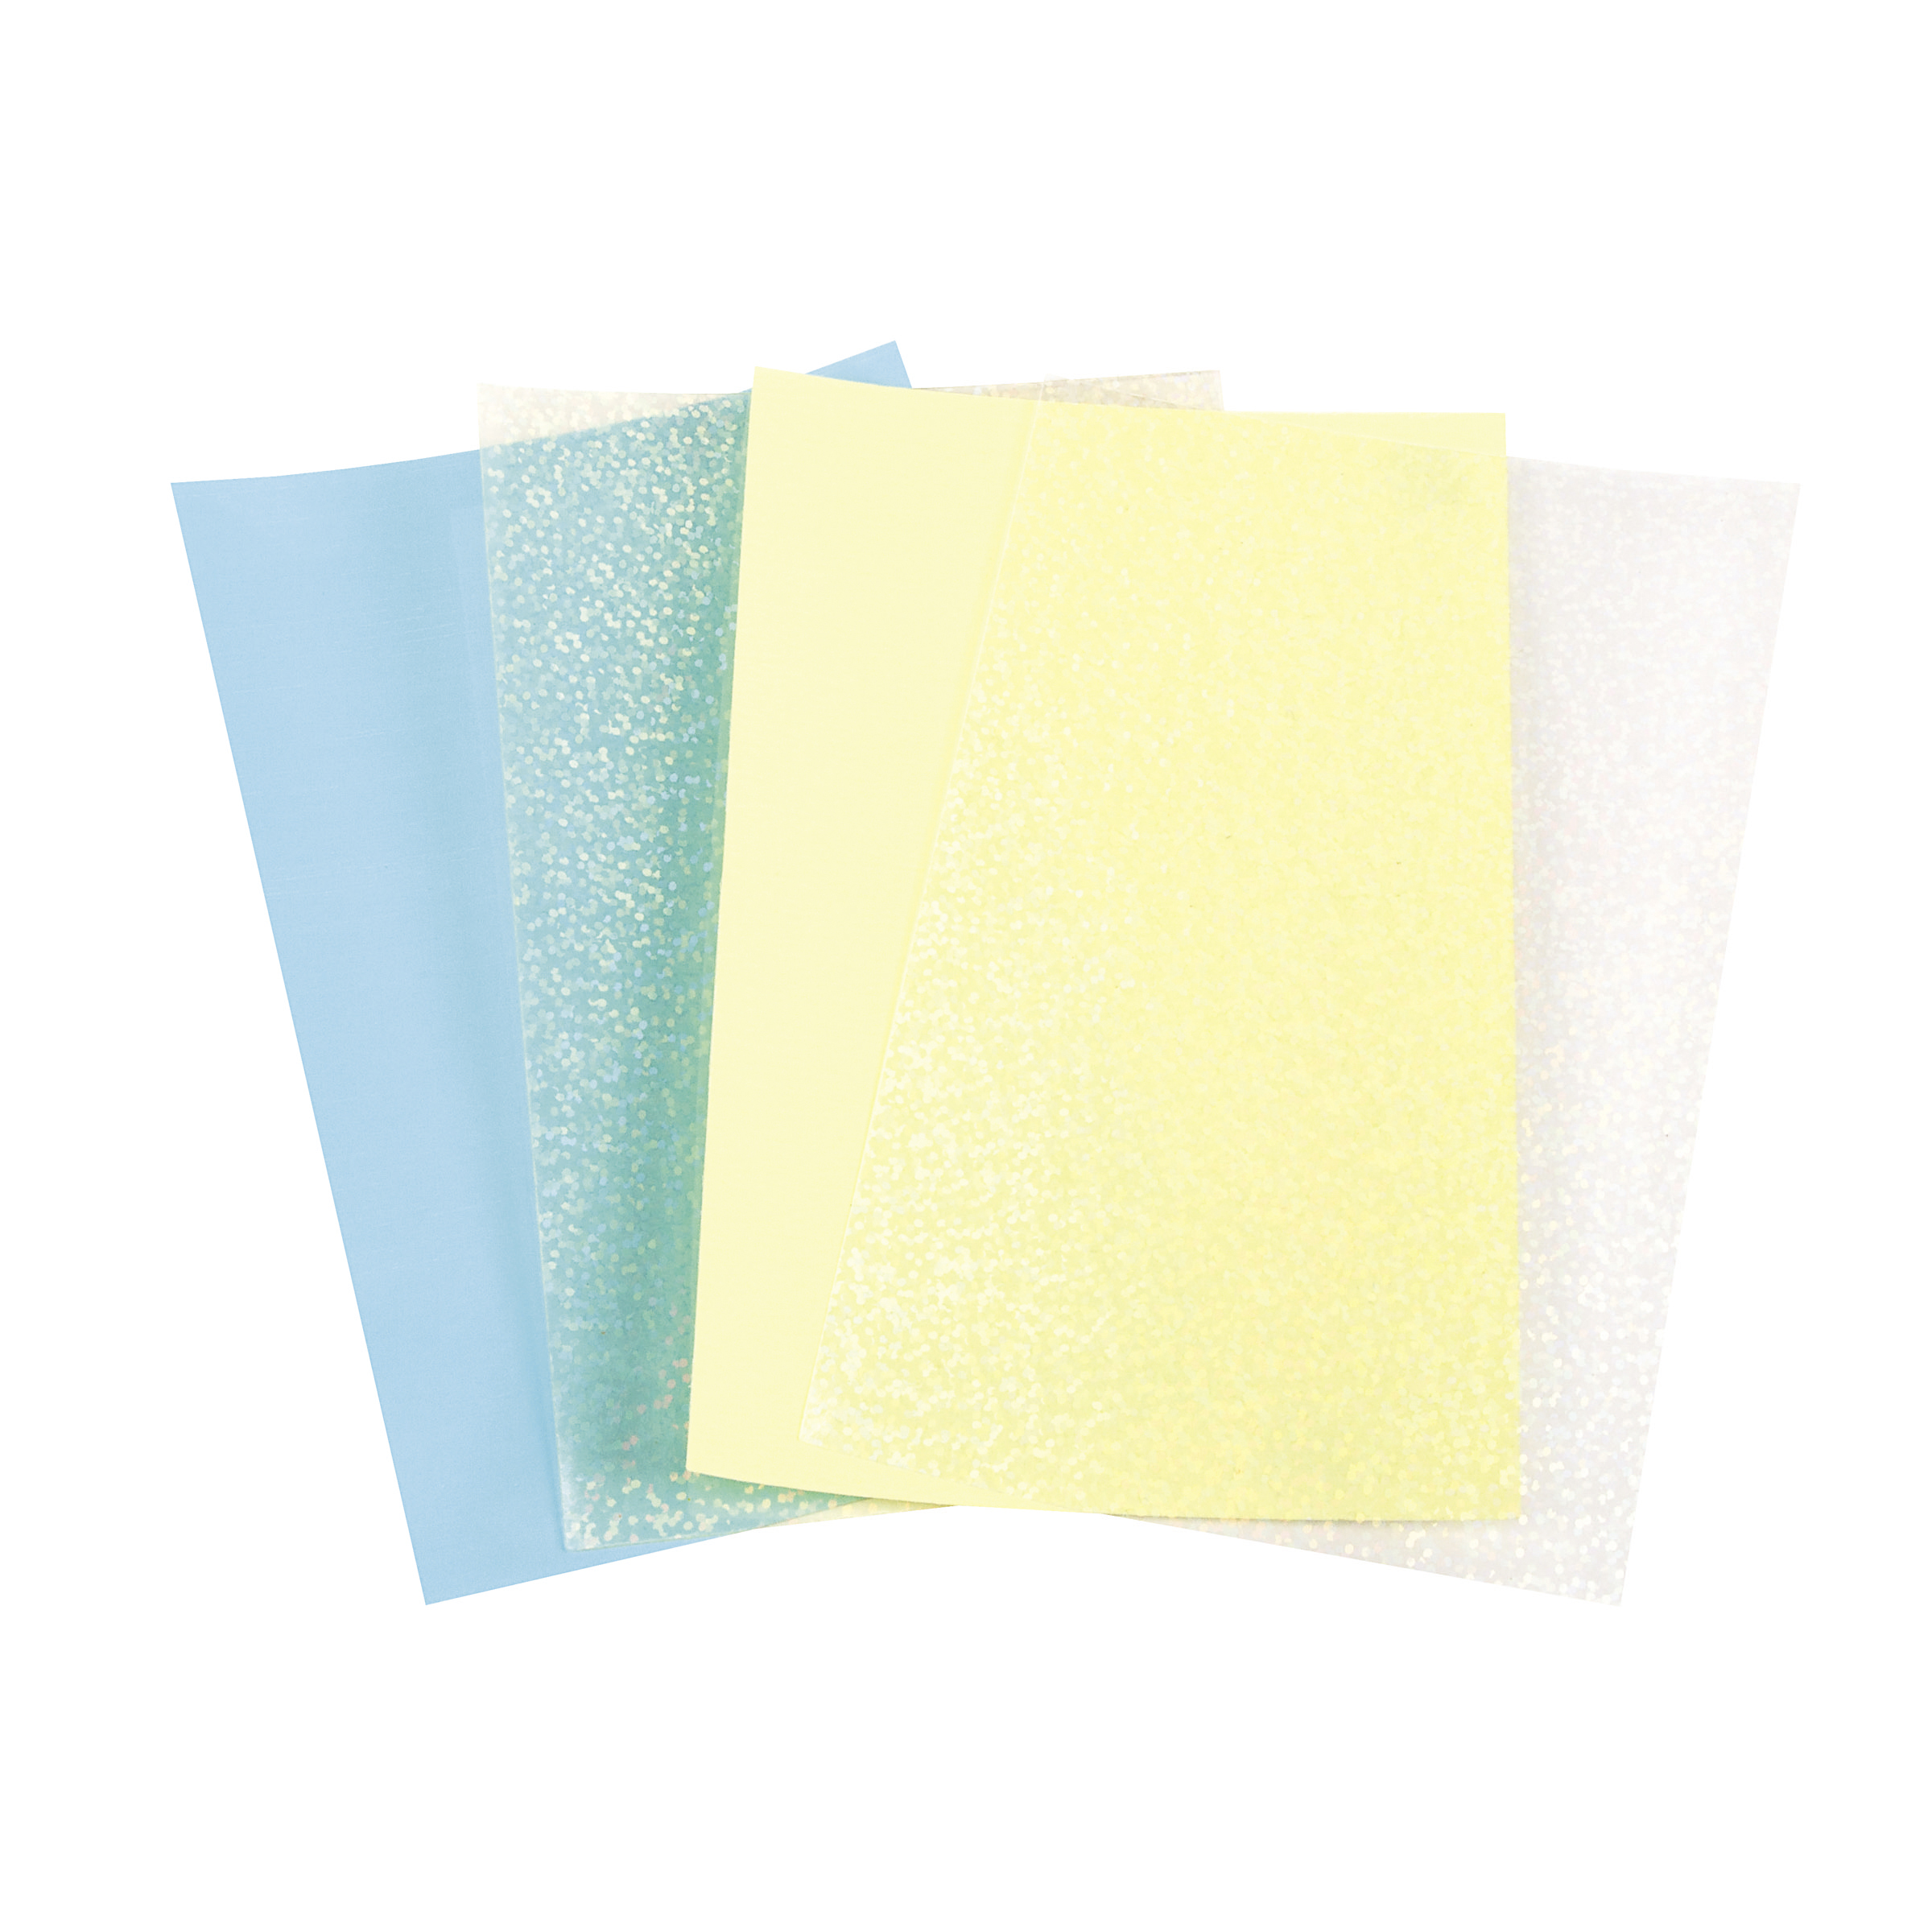 Dream Sequins 4 x 6 Sheets - Cream Blue & Yellow, 4pk